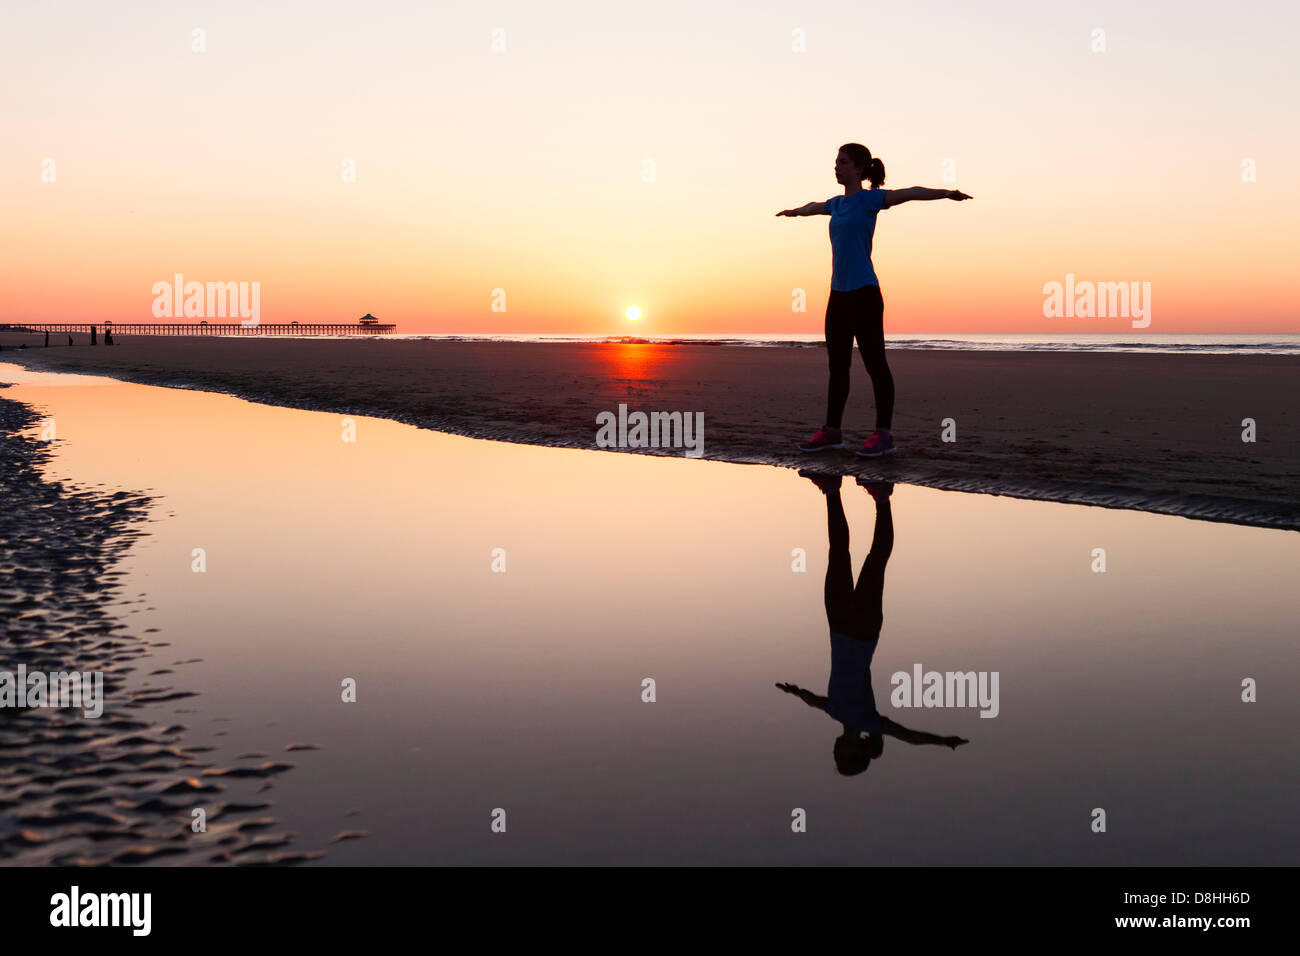 Athlete stretching near ocean - Stock Image